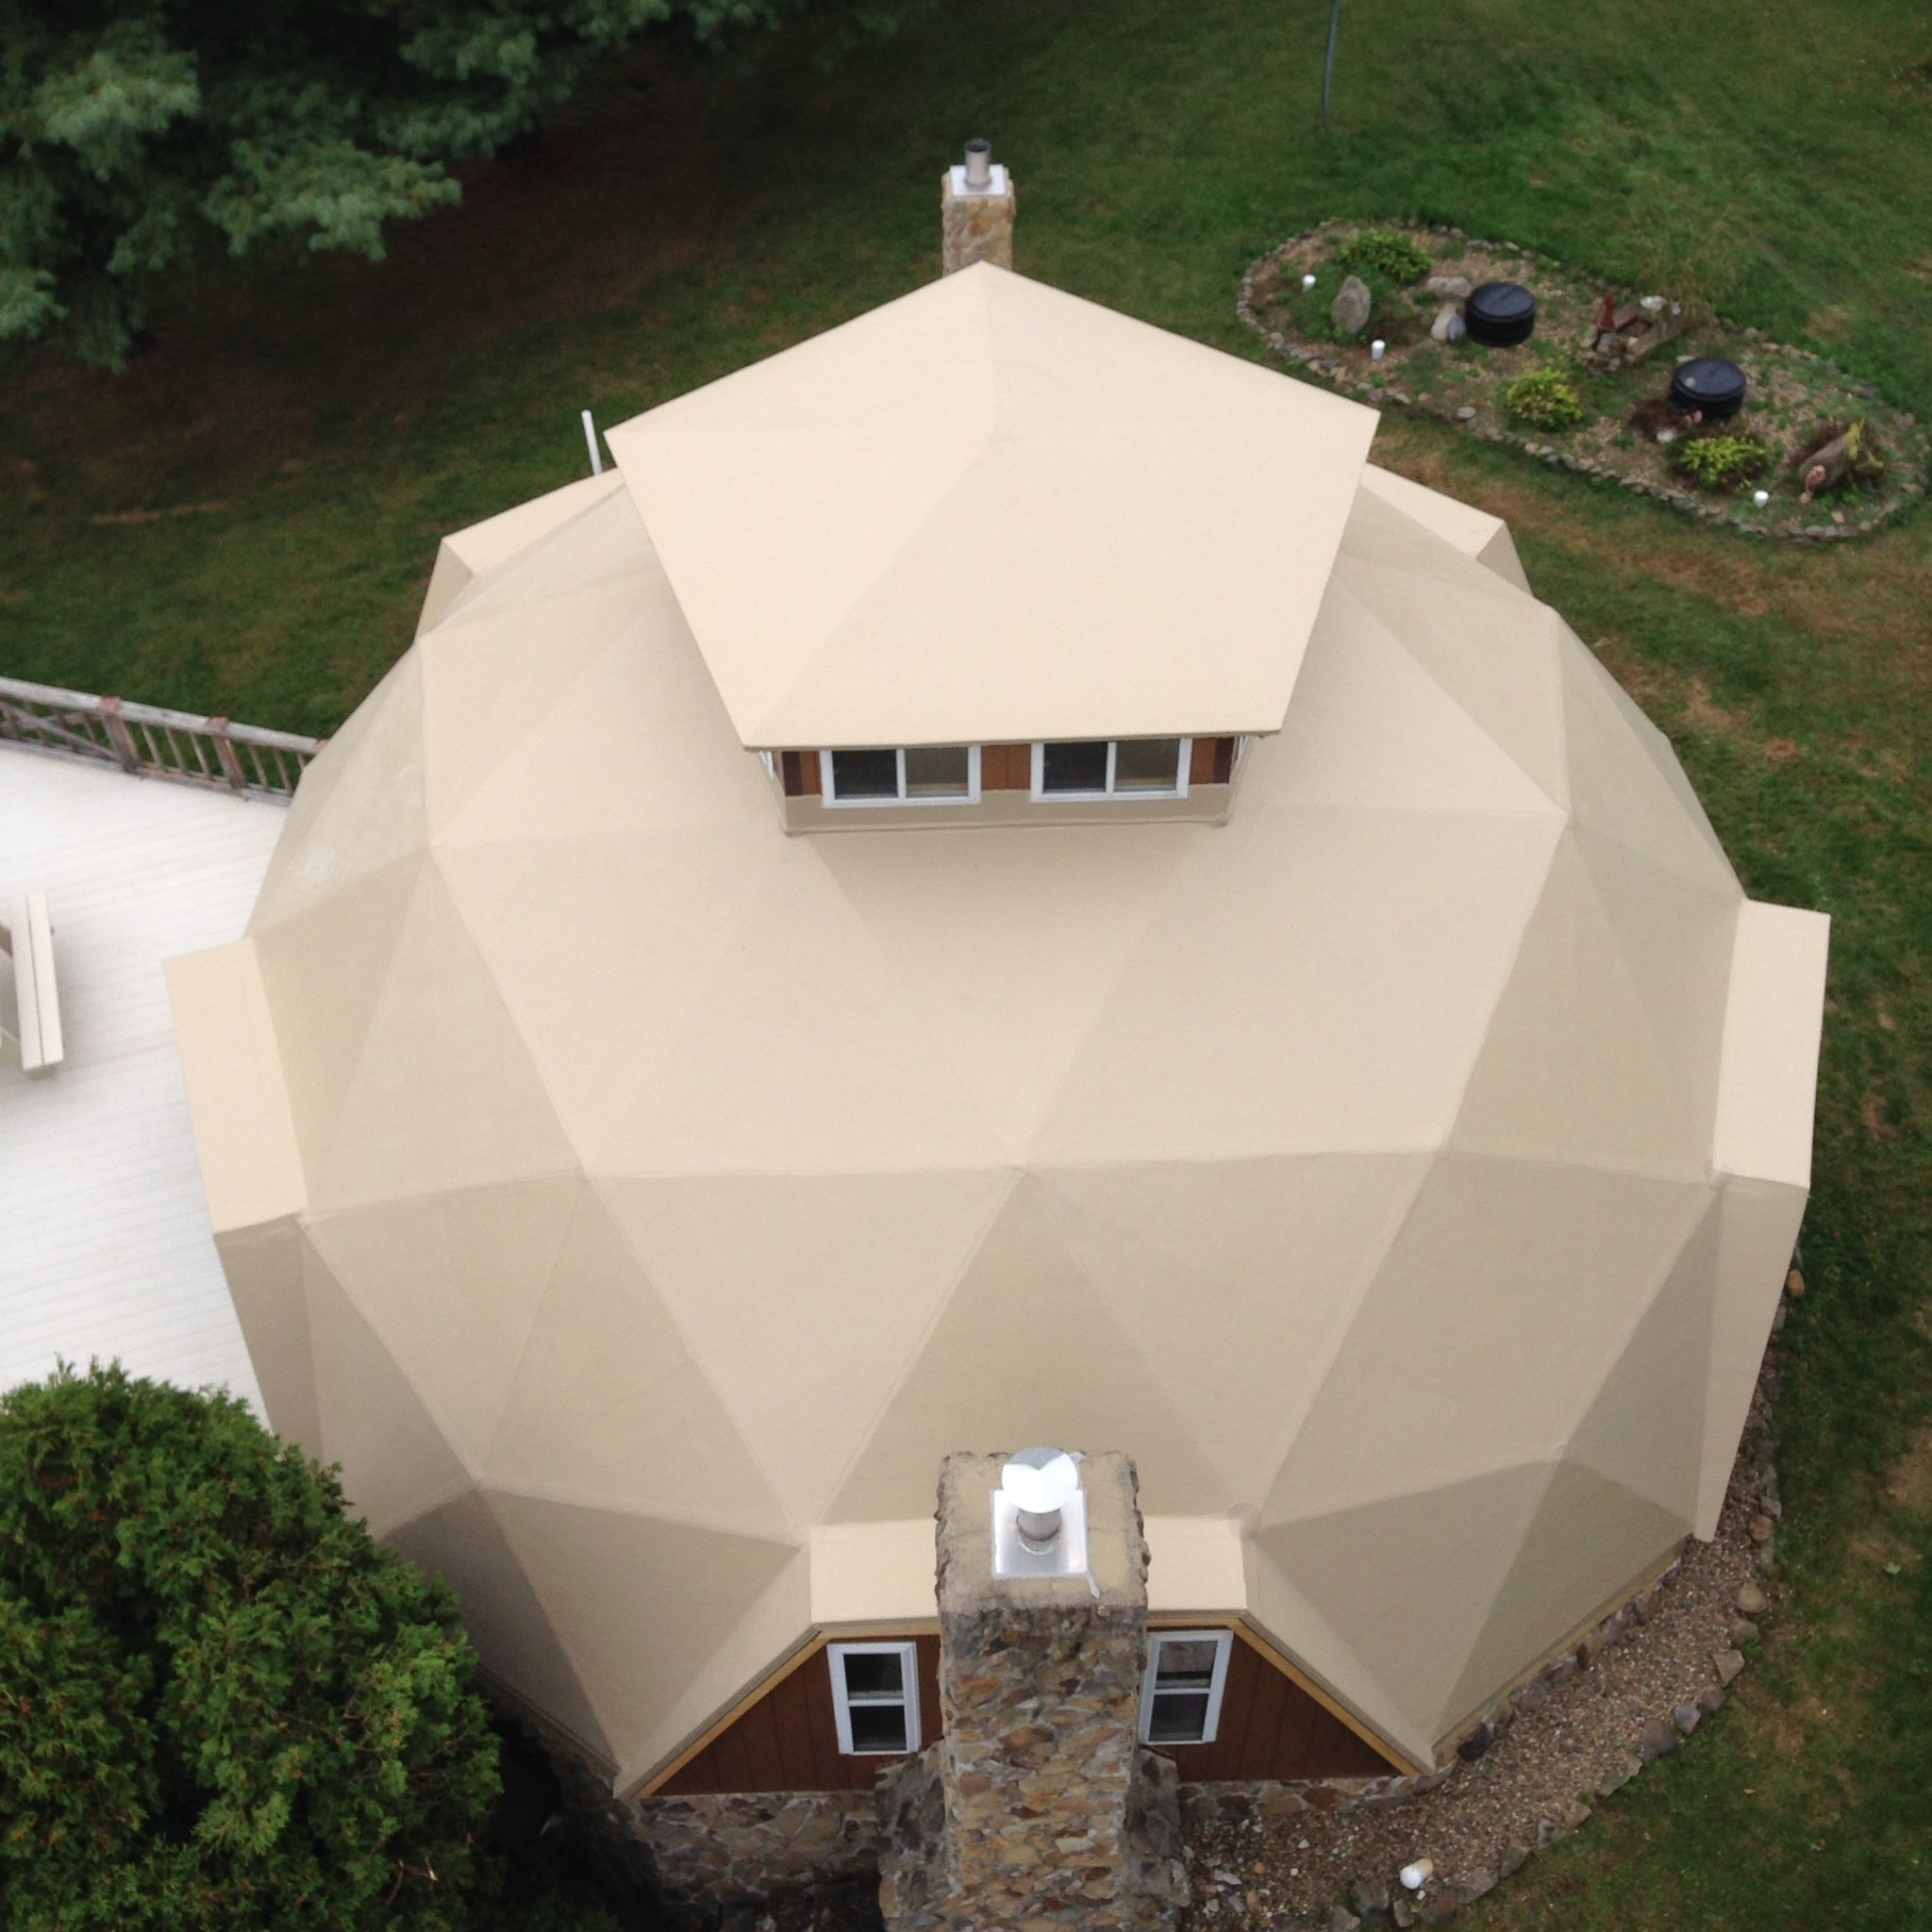 Dome Home Design Ideas: Geodesic Dome Sandstone PVC Membrane Roof Installed By M.E